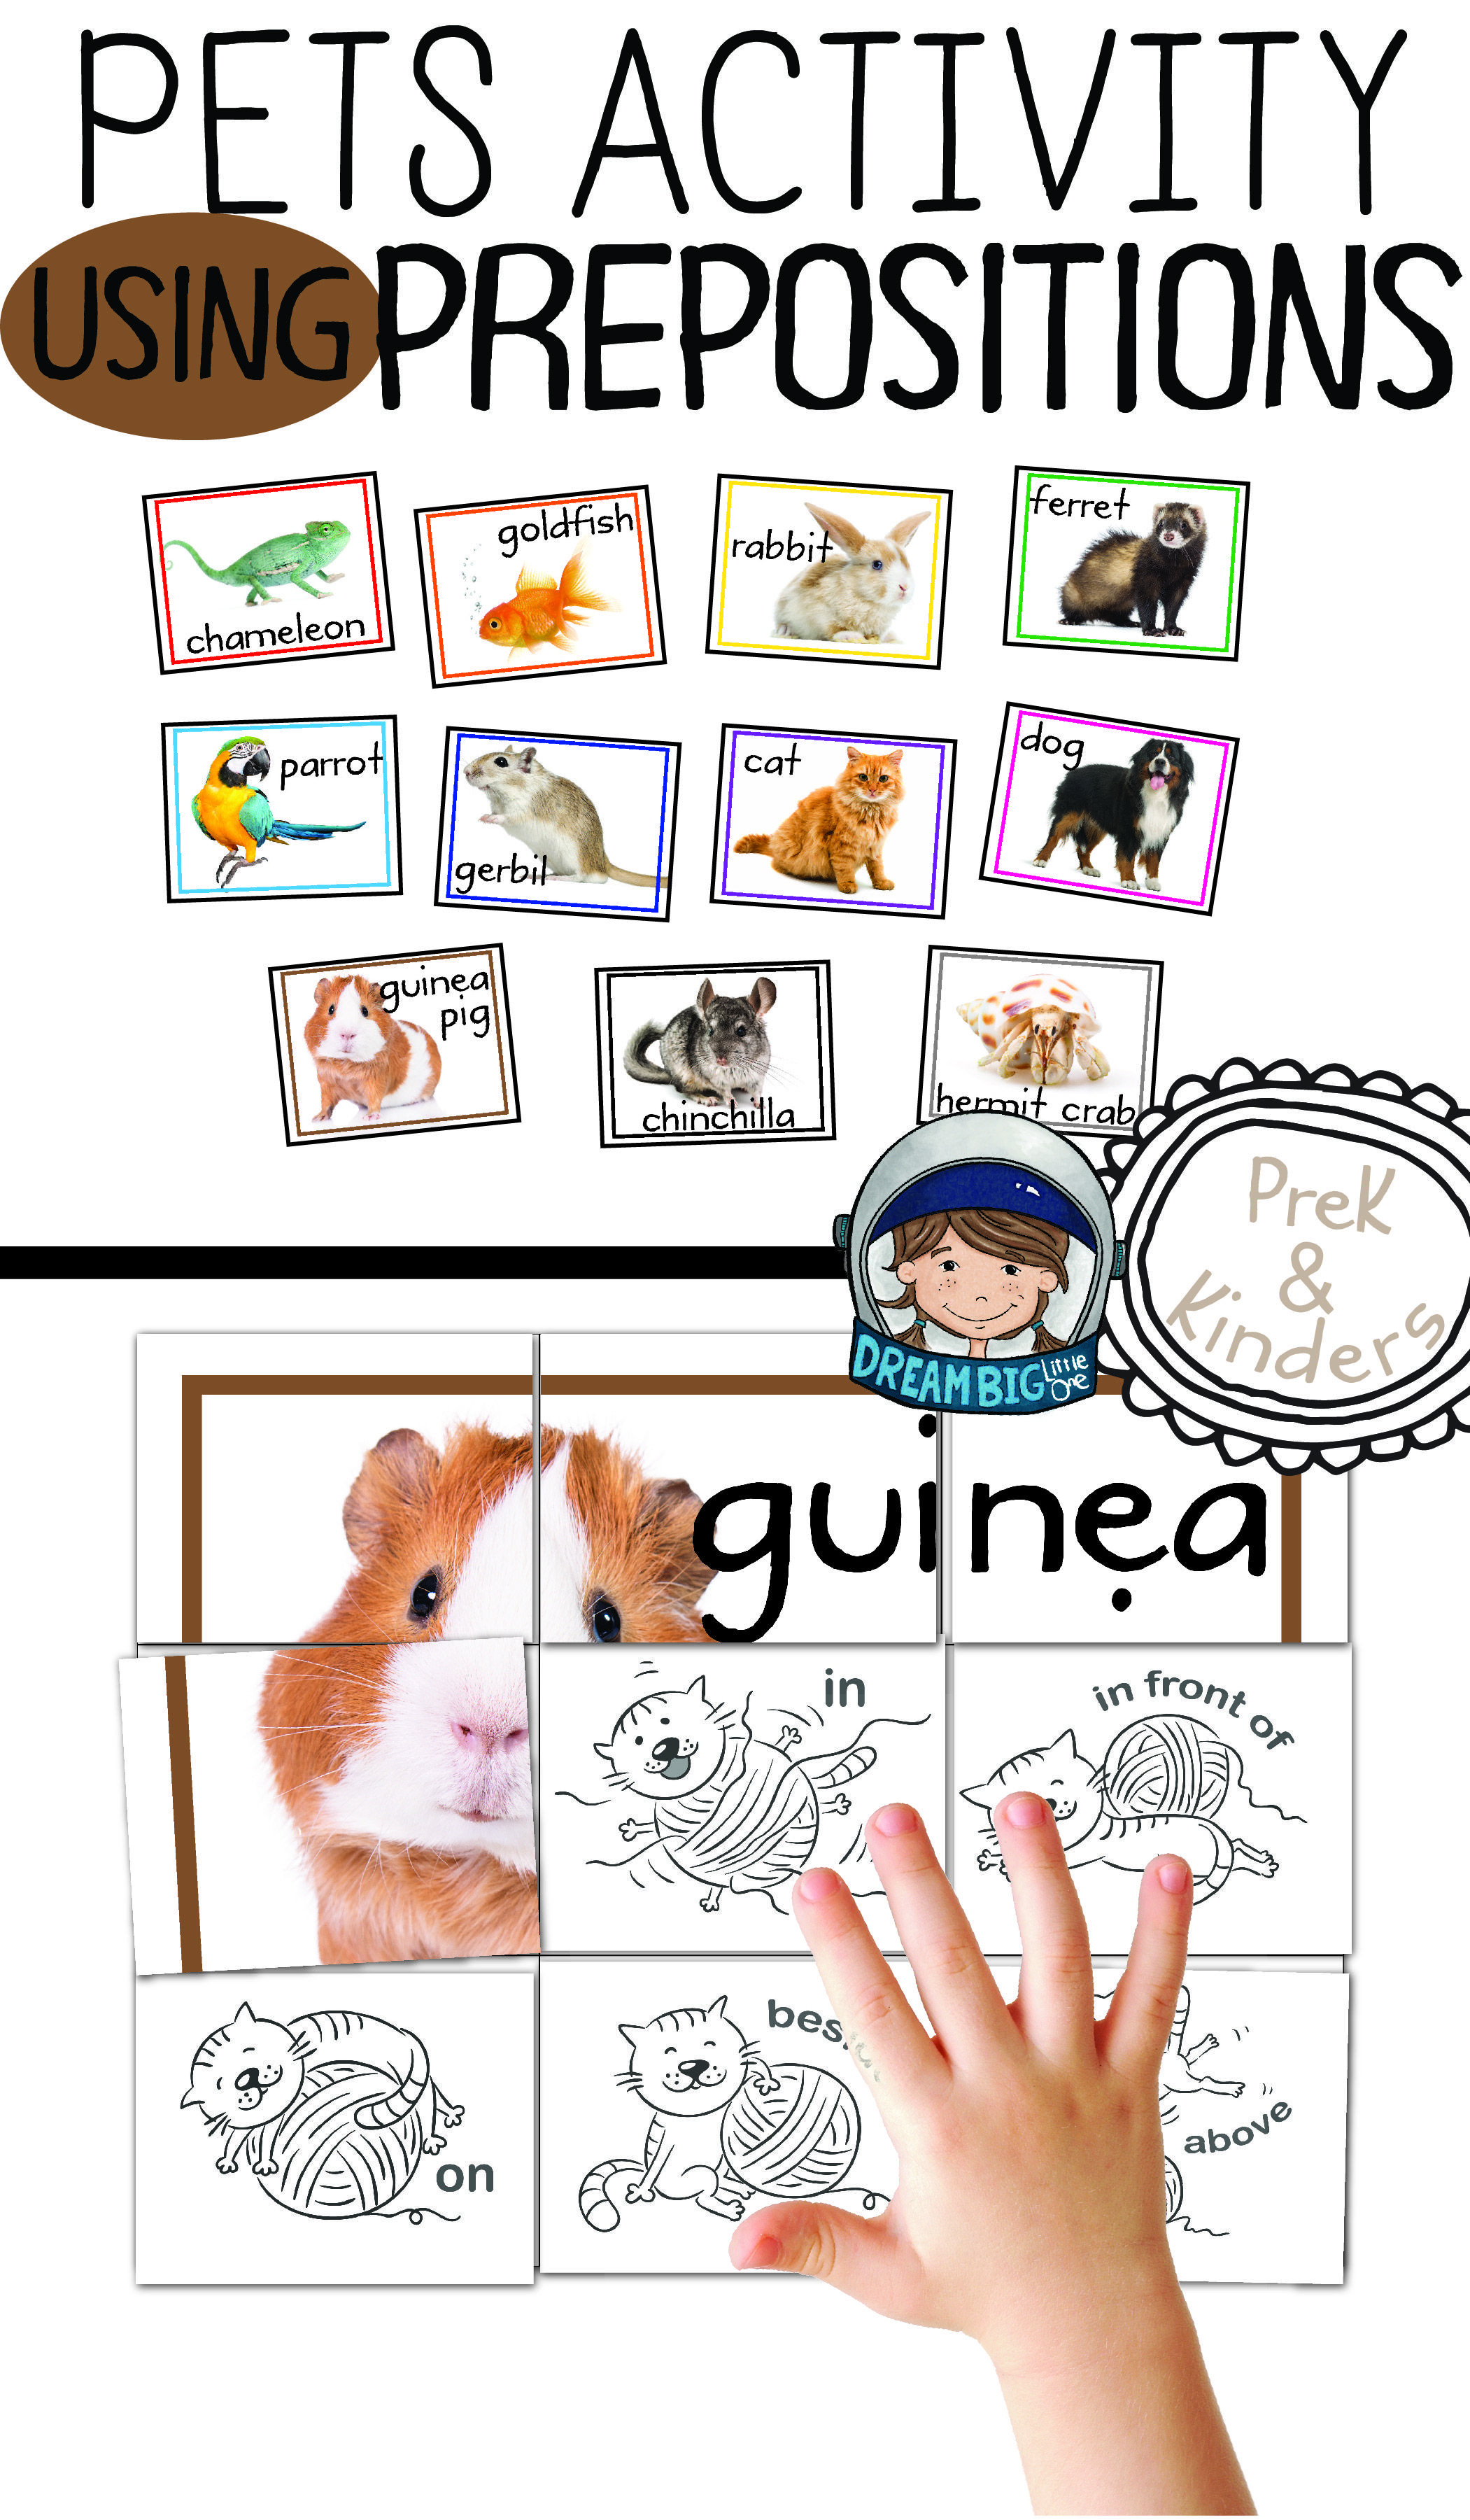 Pet Activity Prepositions Directional Positional Words